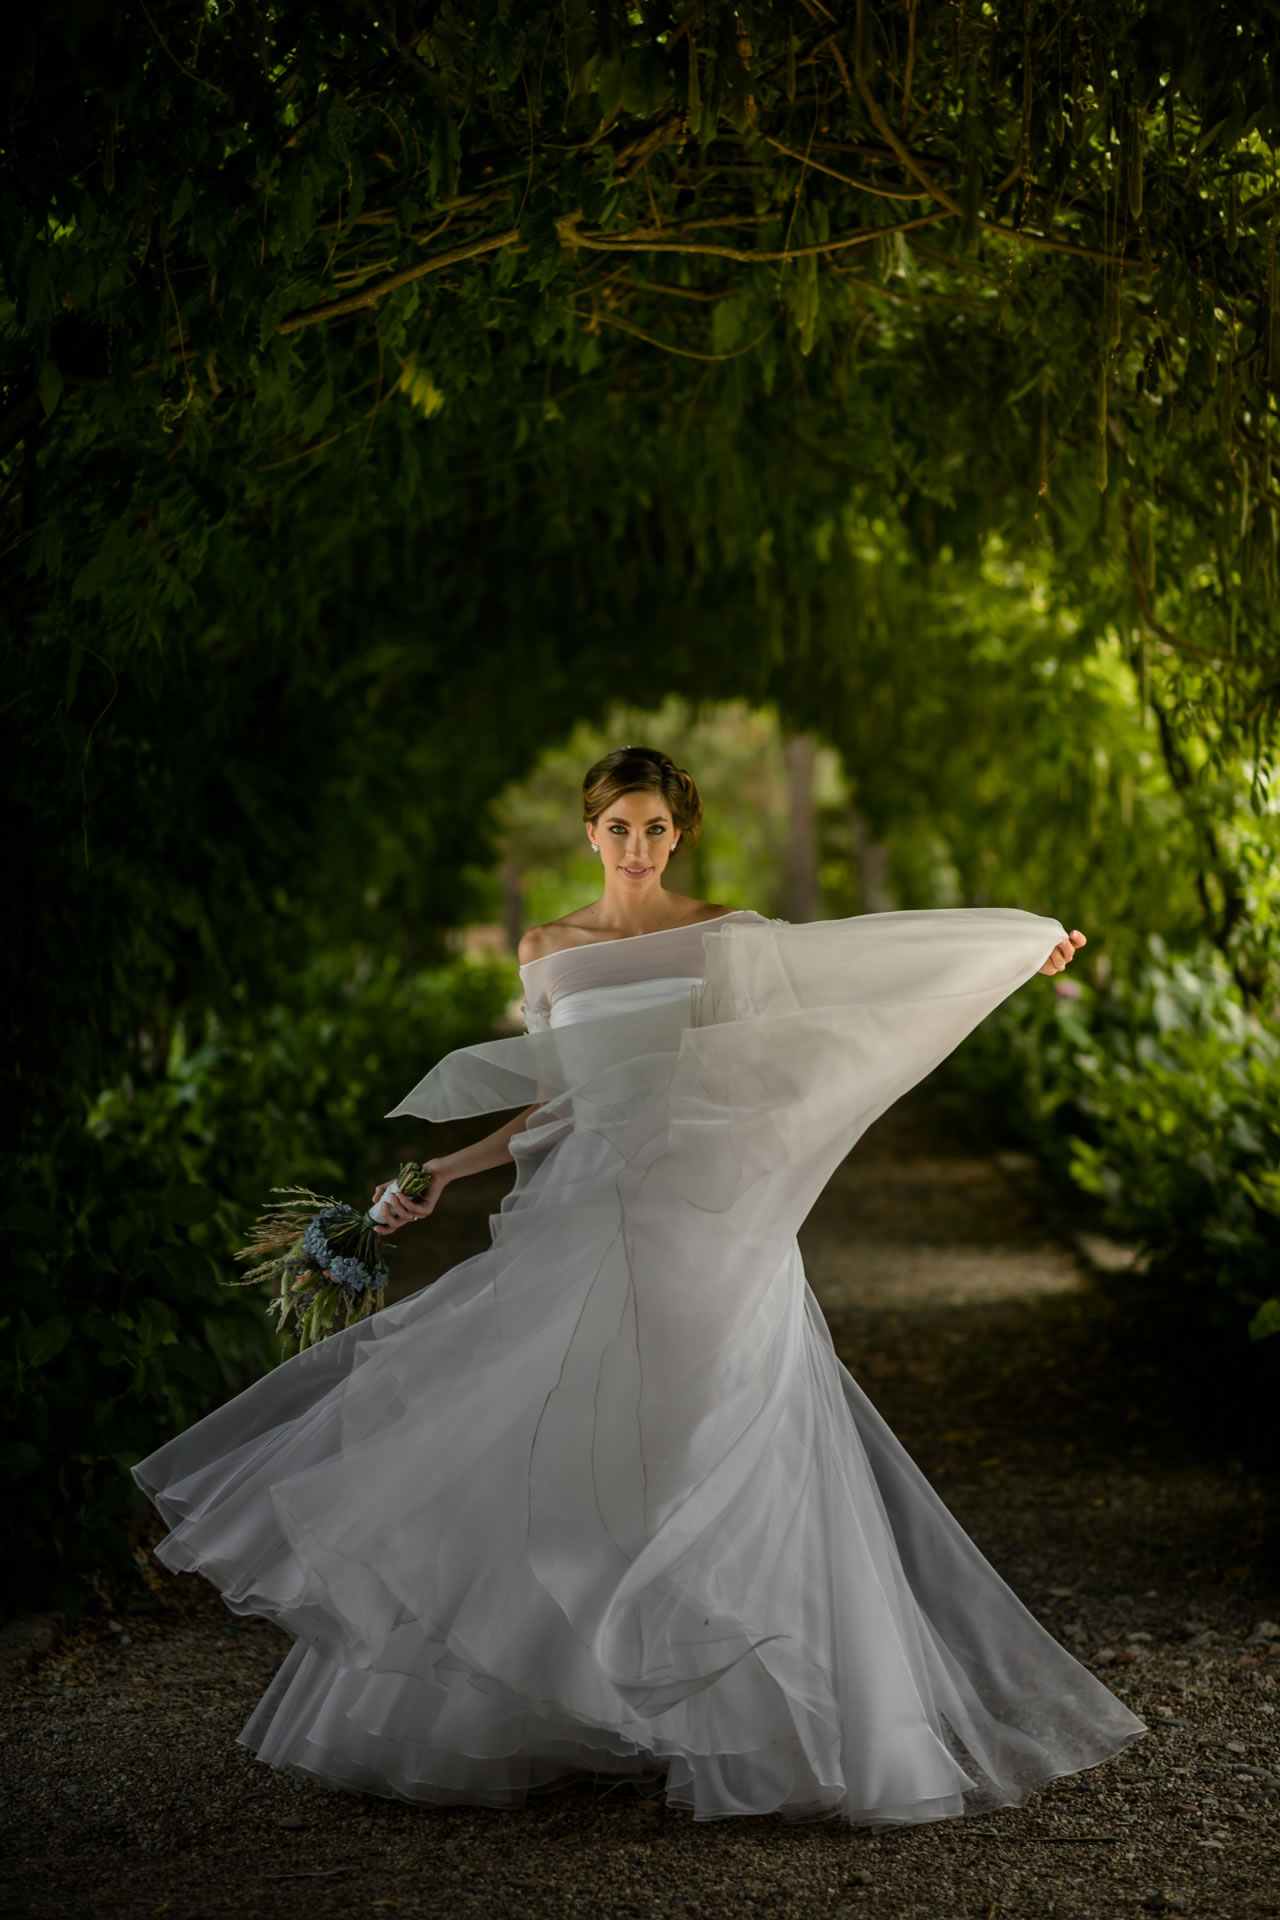 Turn Around - 29 :: Amazing wedding day at Il Borro :: Luxury wedding photography - 28 :: Turn Around - 29